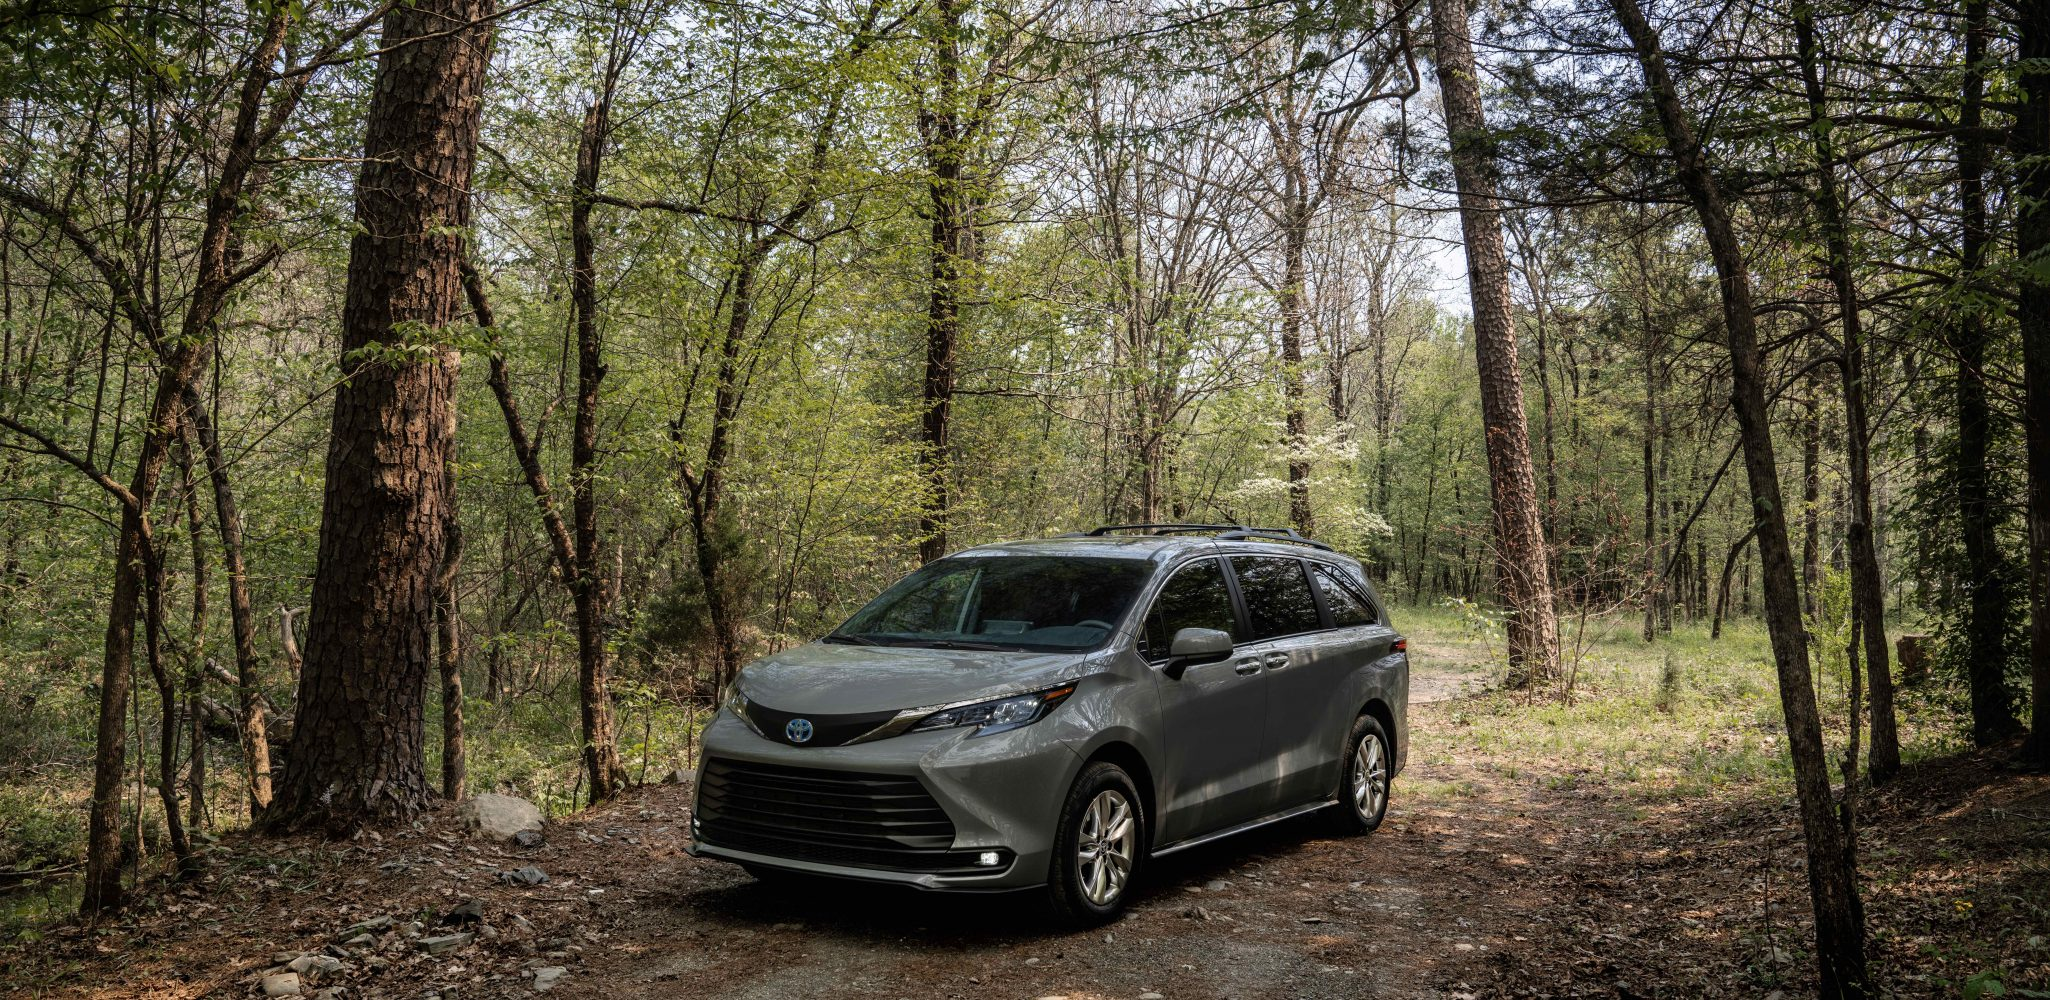 2022 Toyota Sienna Expands Adventure Possibilities with New Woodland Edition